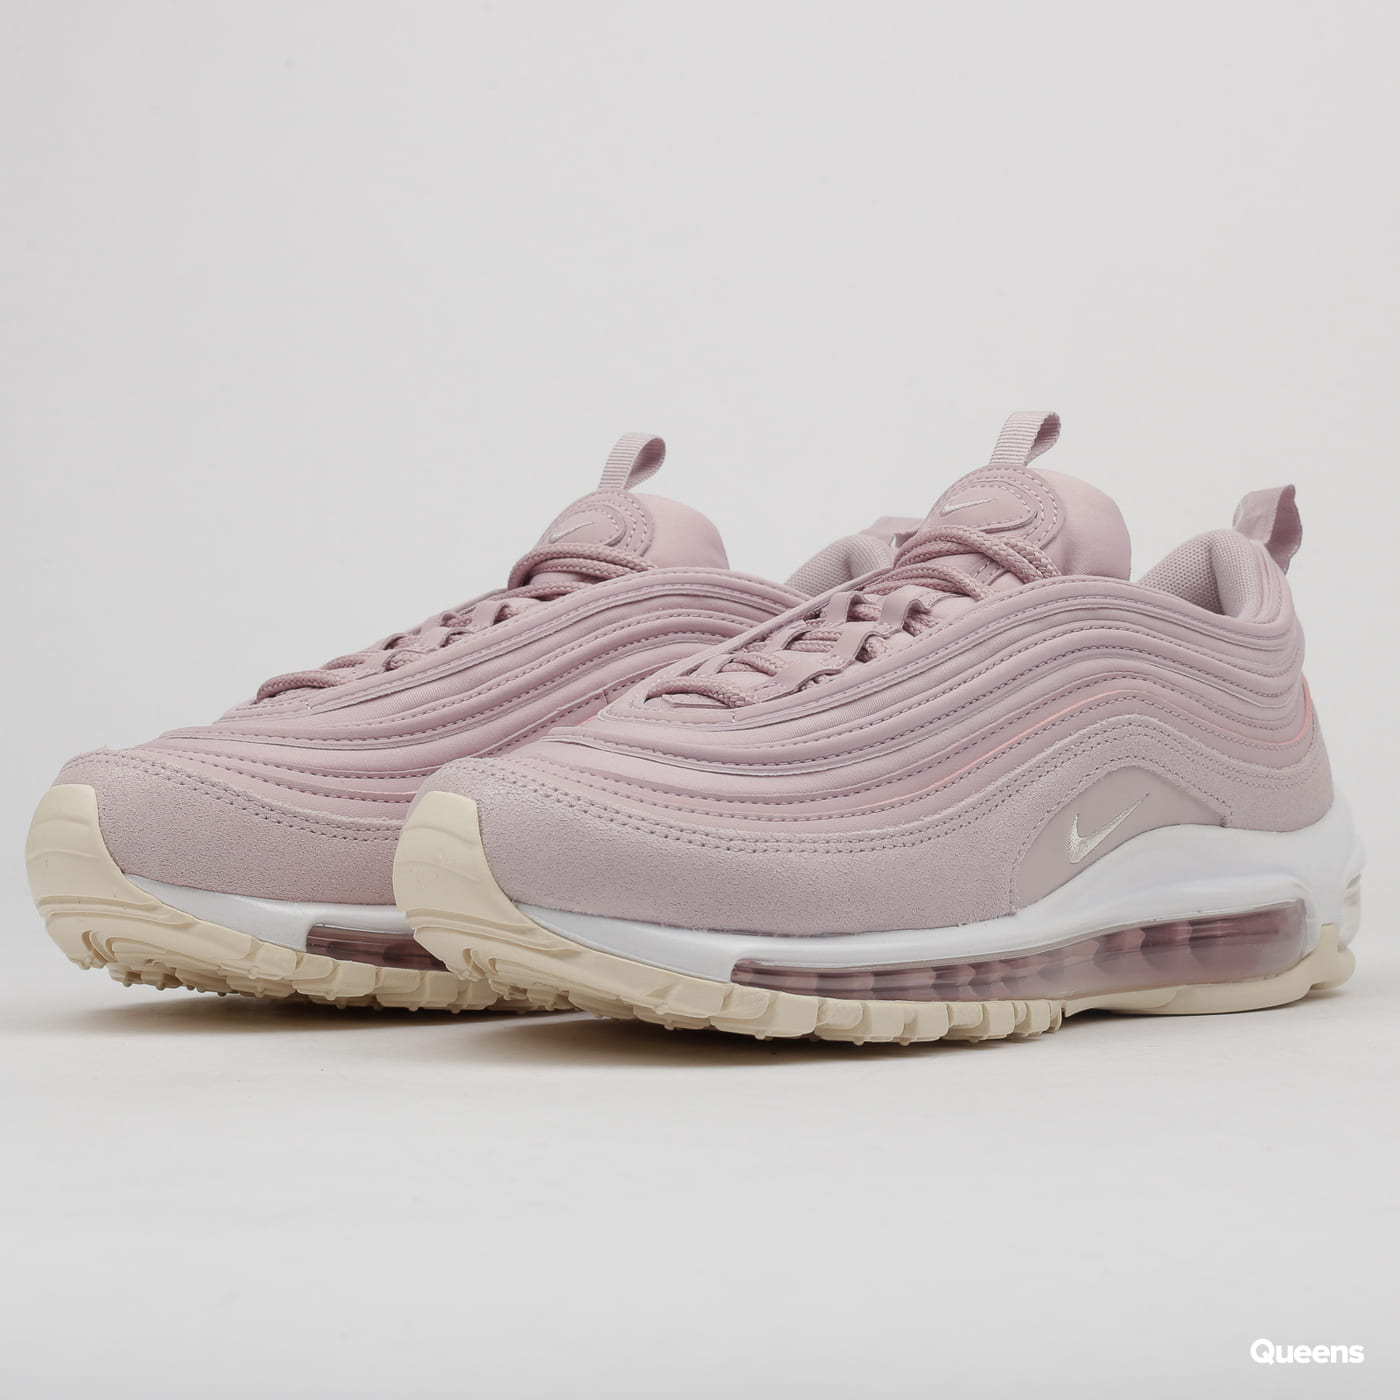 new product 613b9 a18d2 Nike W Air Max 97 Premium plum chalk / light cream